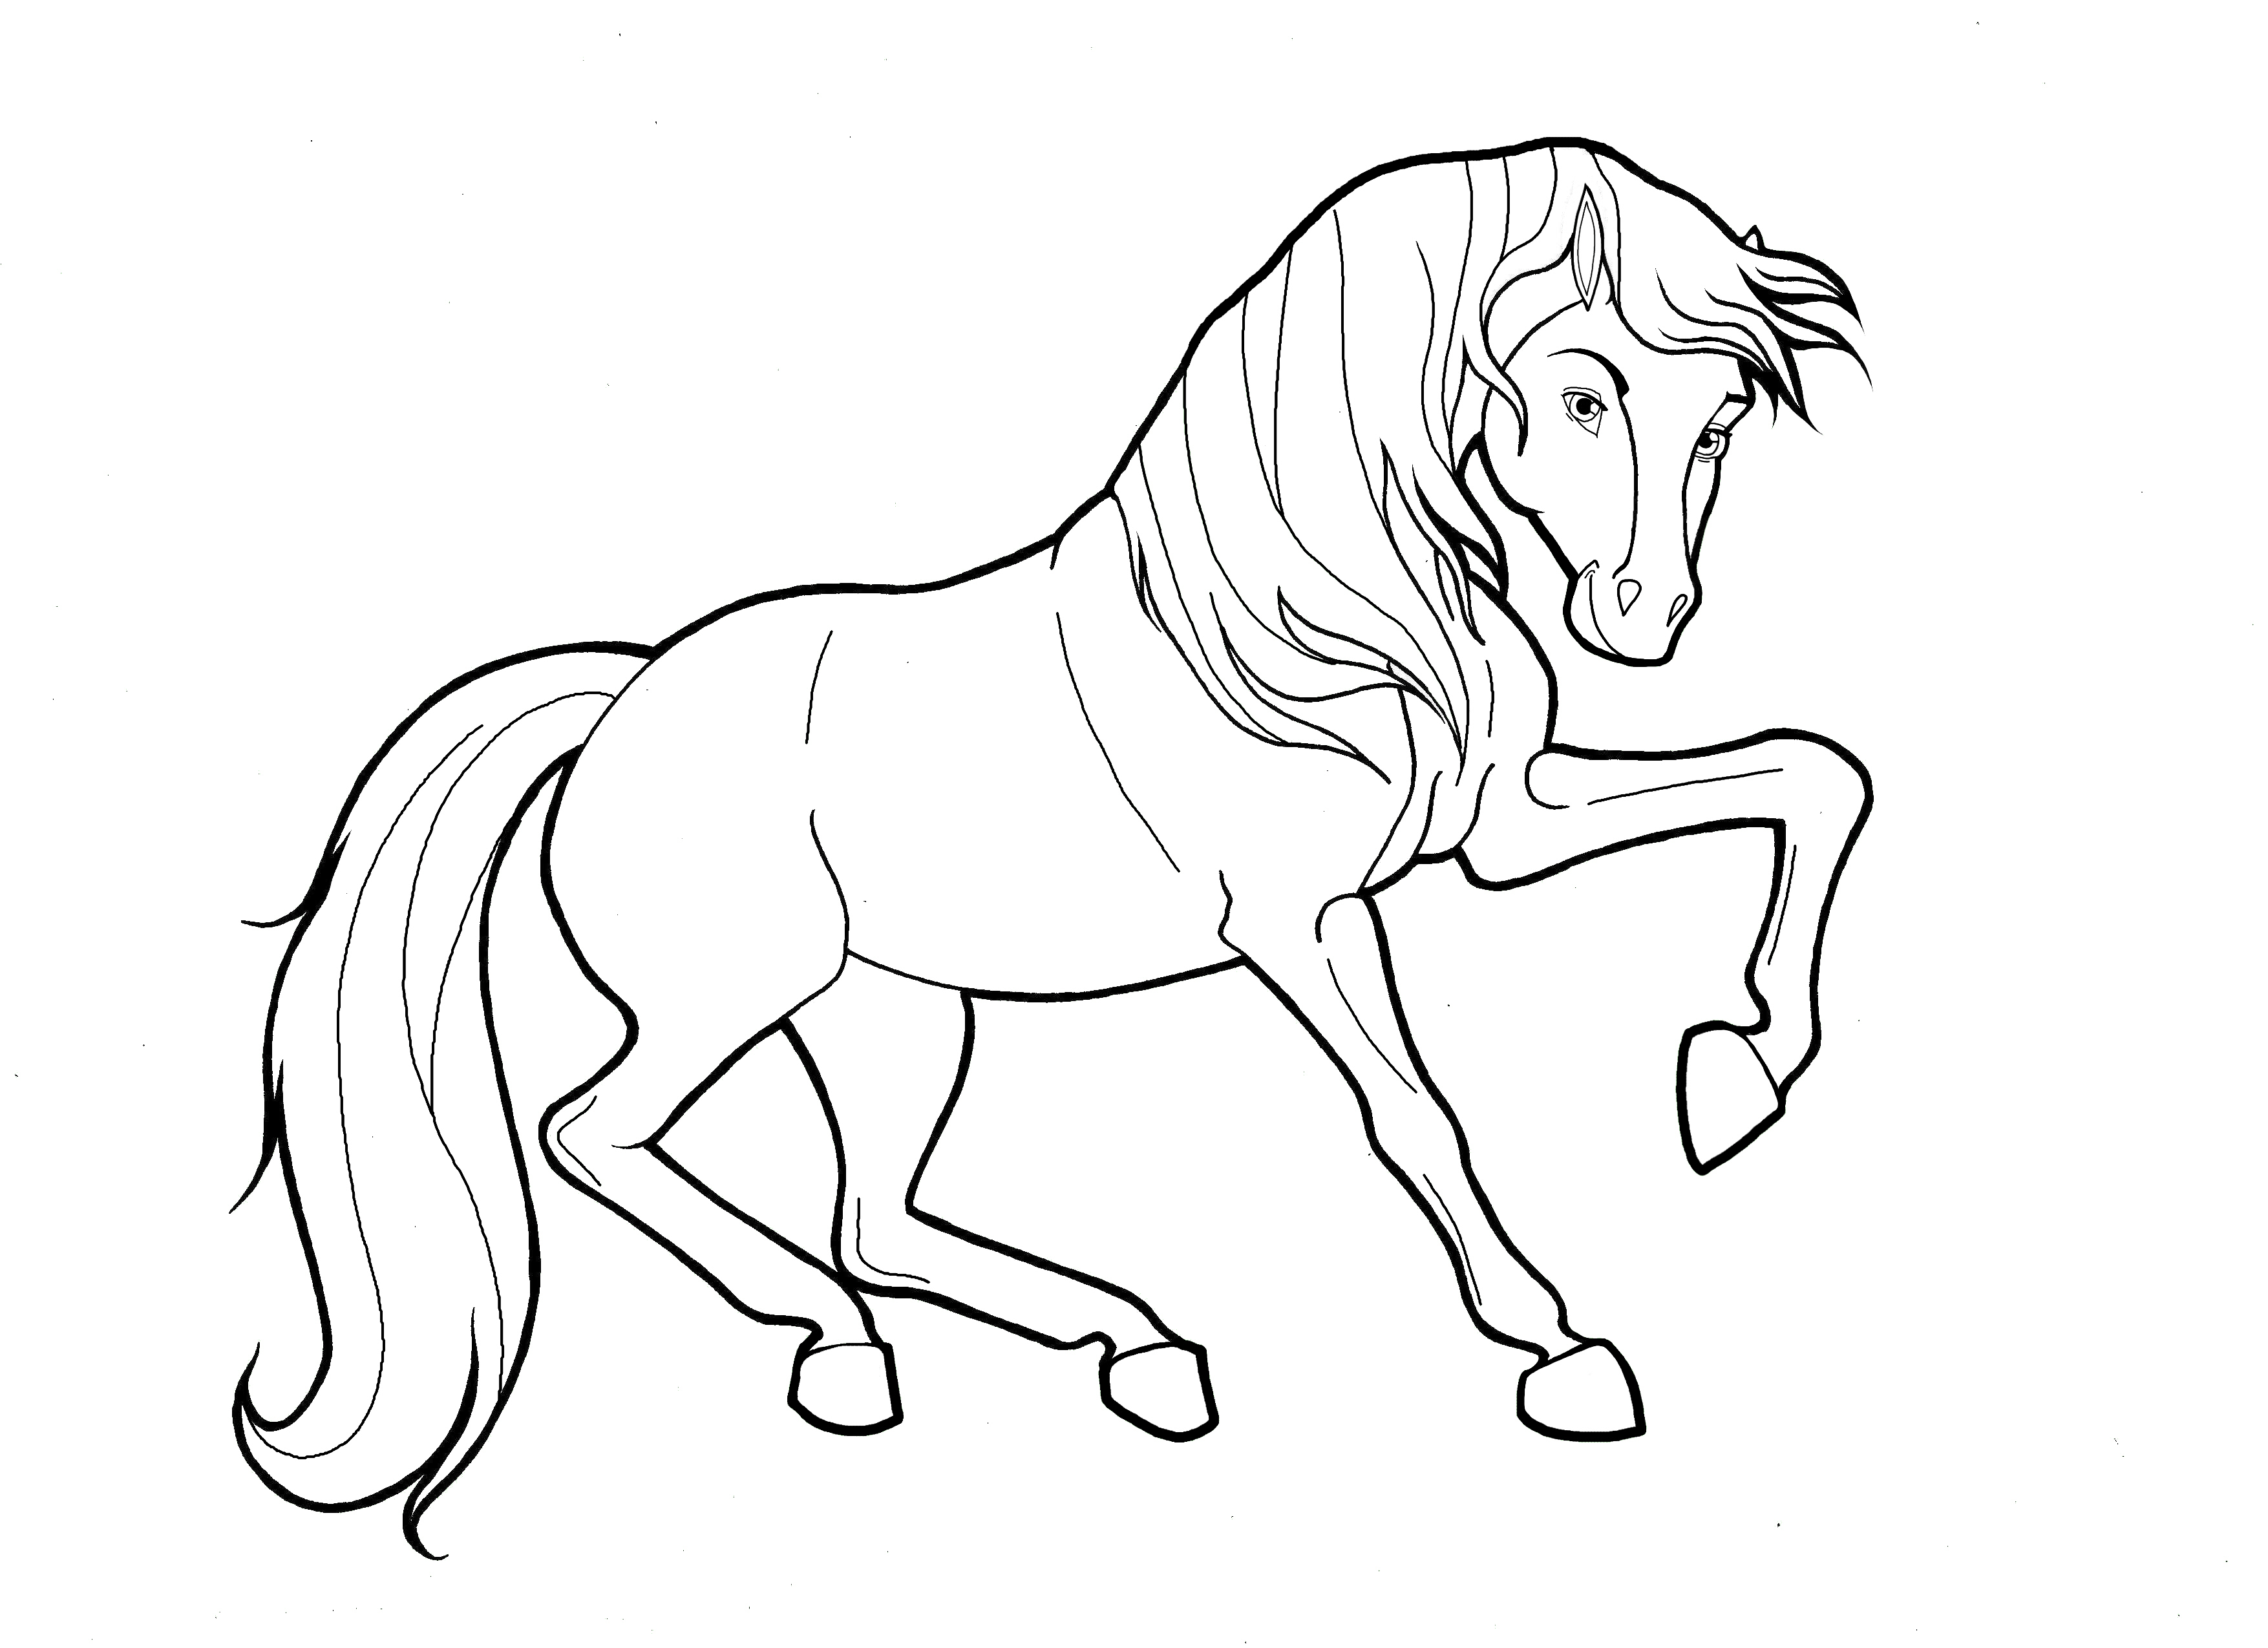 wild horse coloring pages wild horse coloring pages coloring pages coloring pages wild horse